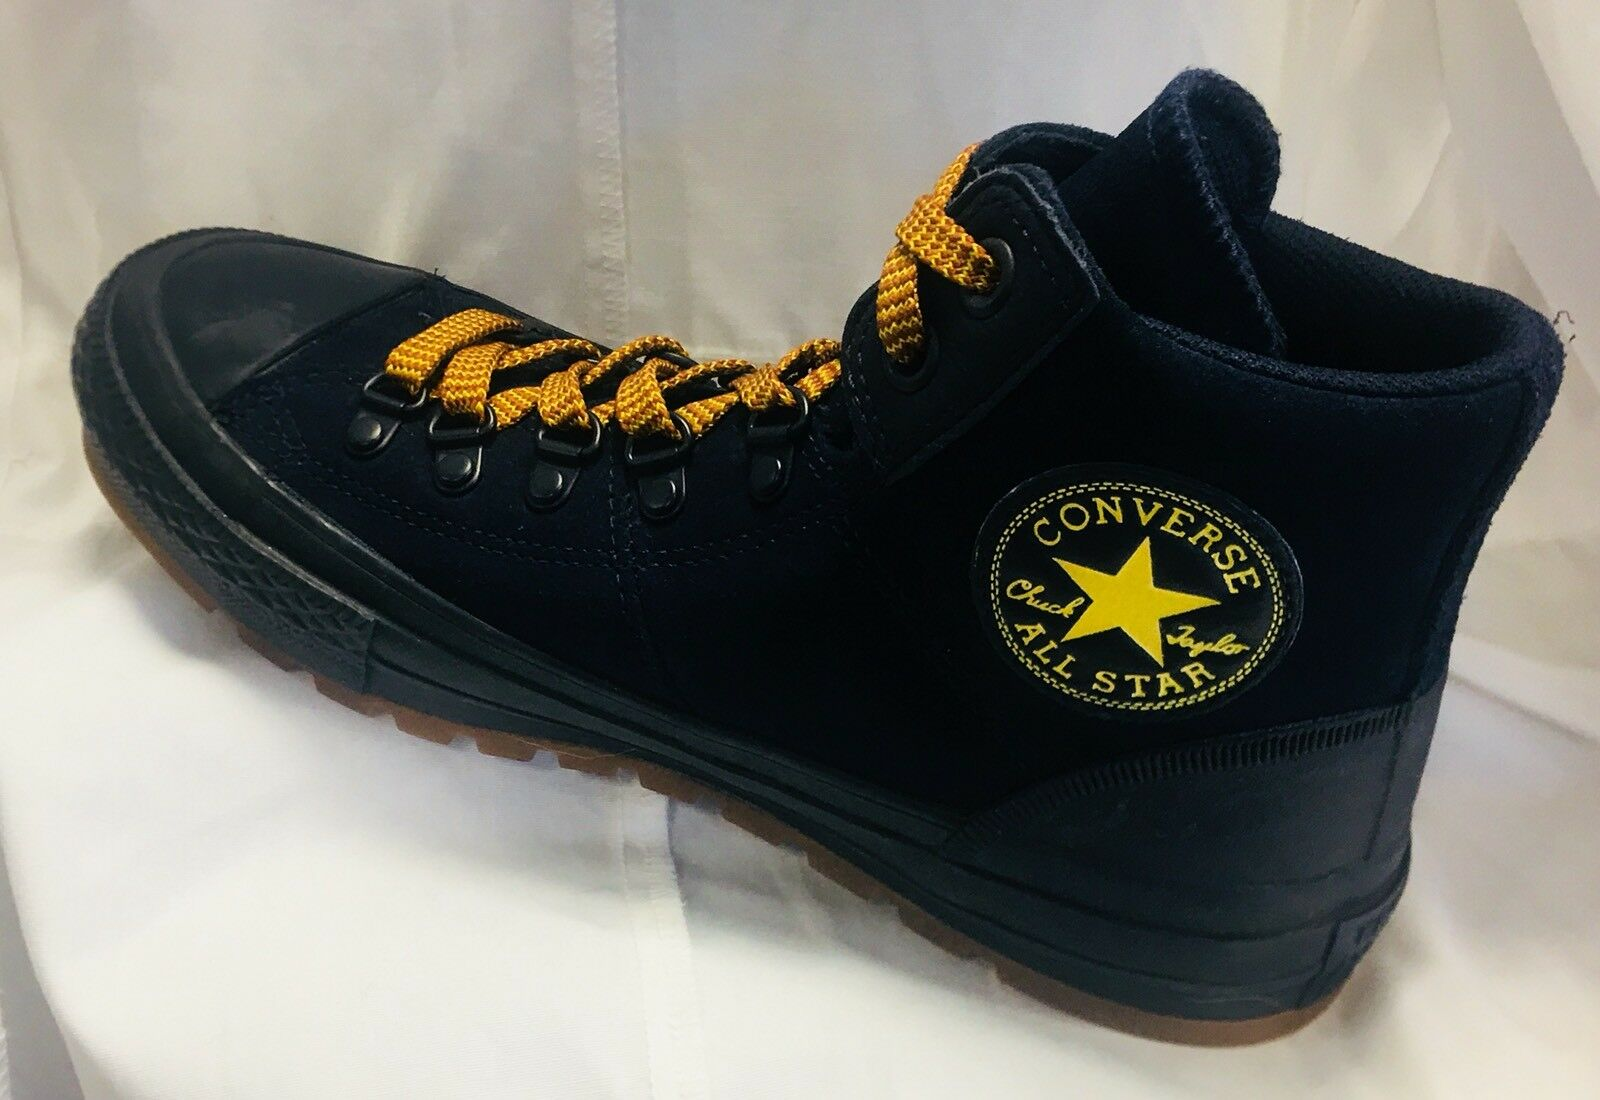 Converse all star Navy chuck taylor Sneaker Schuhes Navy star Suede Yellow Laces Größe 6 2c4b52